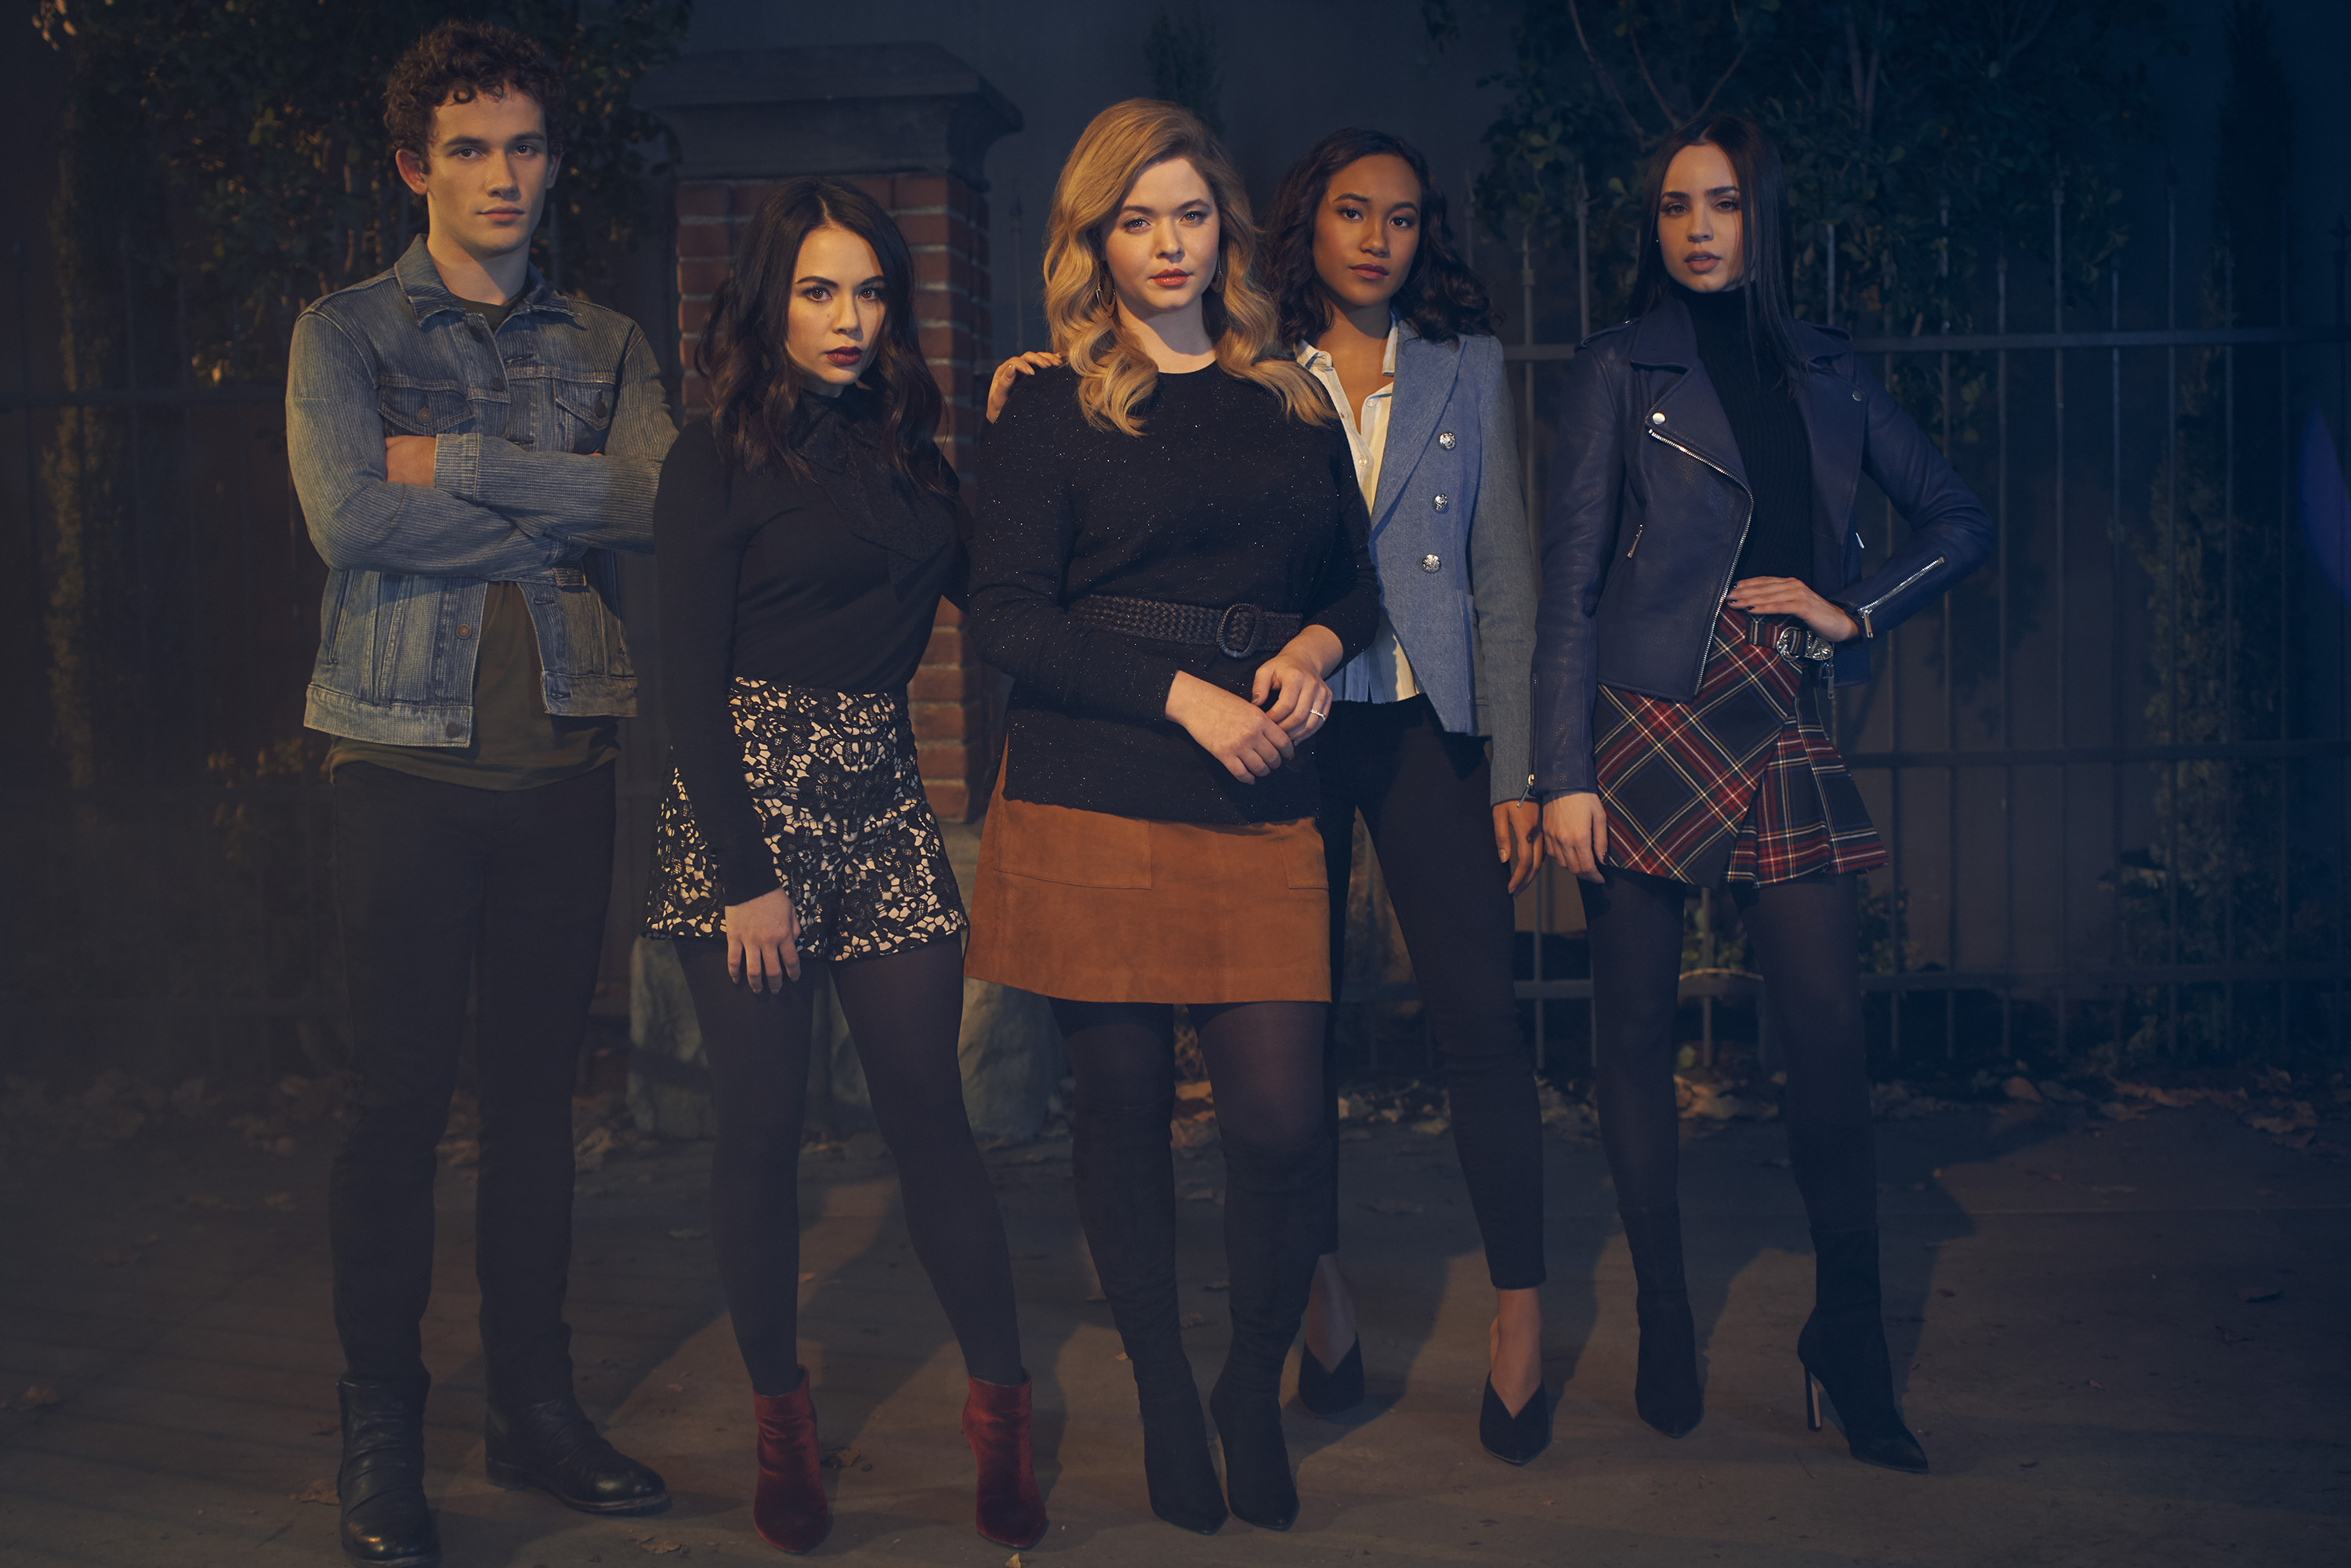 Pretty Little Liars The Perfectionists HD Wallpaper Background 3000x2001